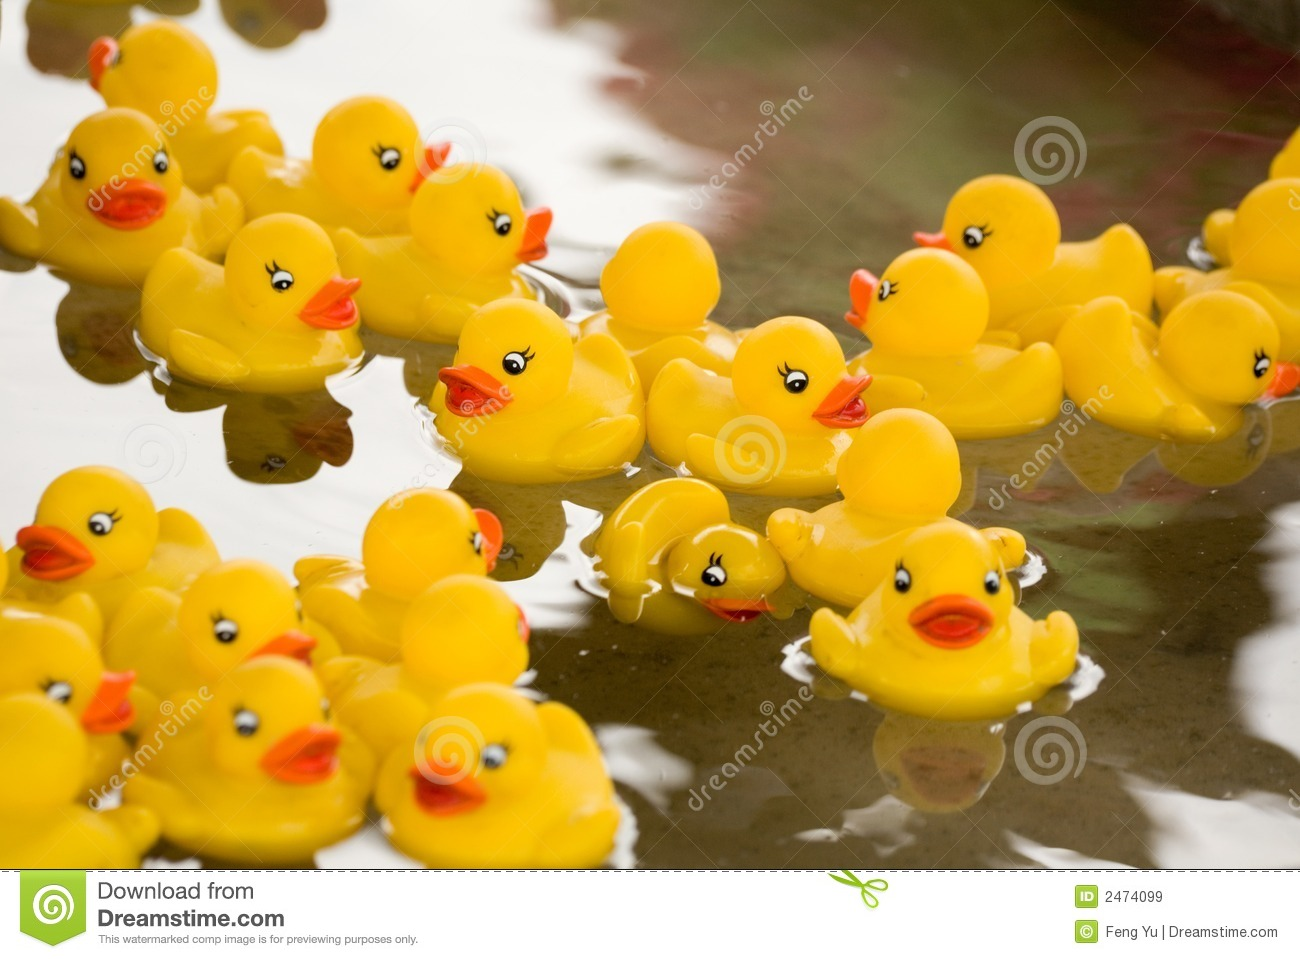 Rubber Duck Stock Image Image Of Duckies Smile Plastic 2474099